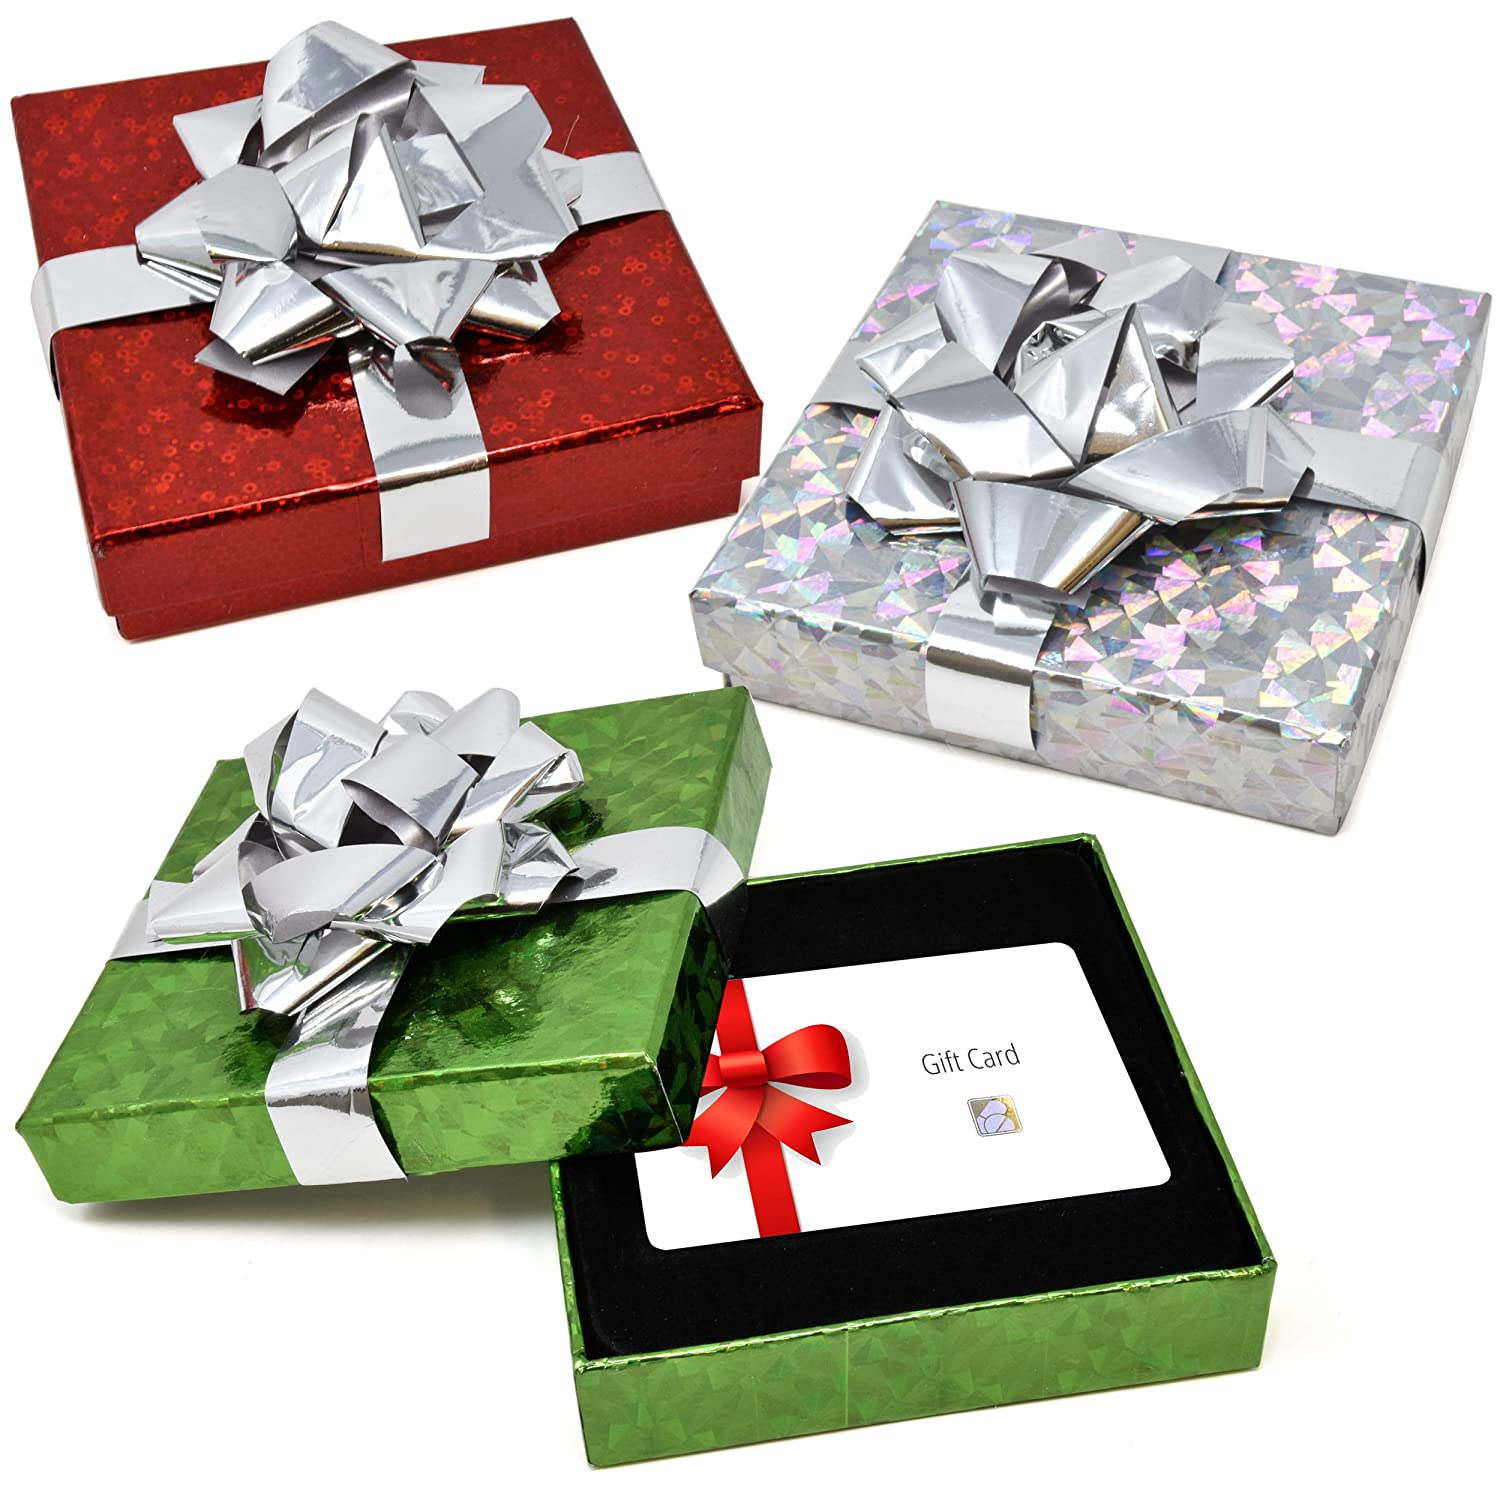 Christmas Gift Card Holder Boxes Holiday Money Card Holders Party Favor Dé cor, Pack Of 6 Assorted Red Green And Silver Present Box With Bow By Gift Boutique